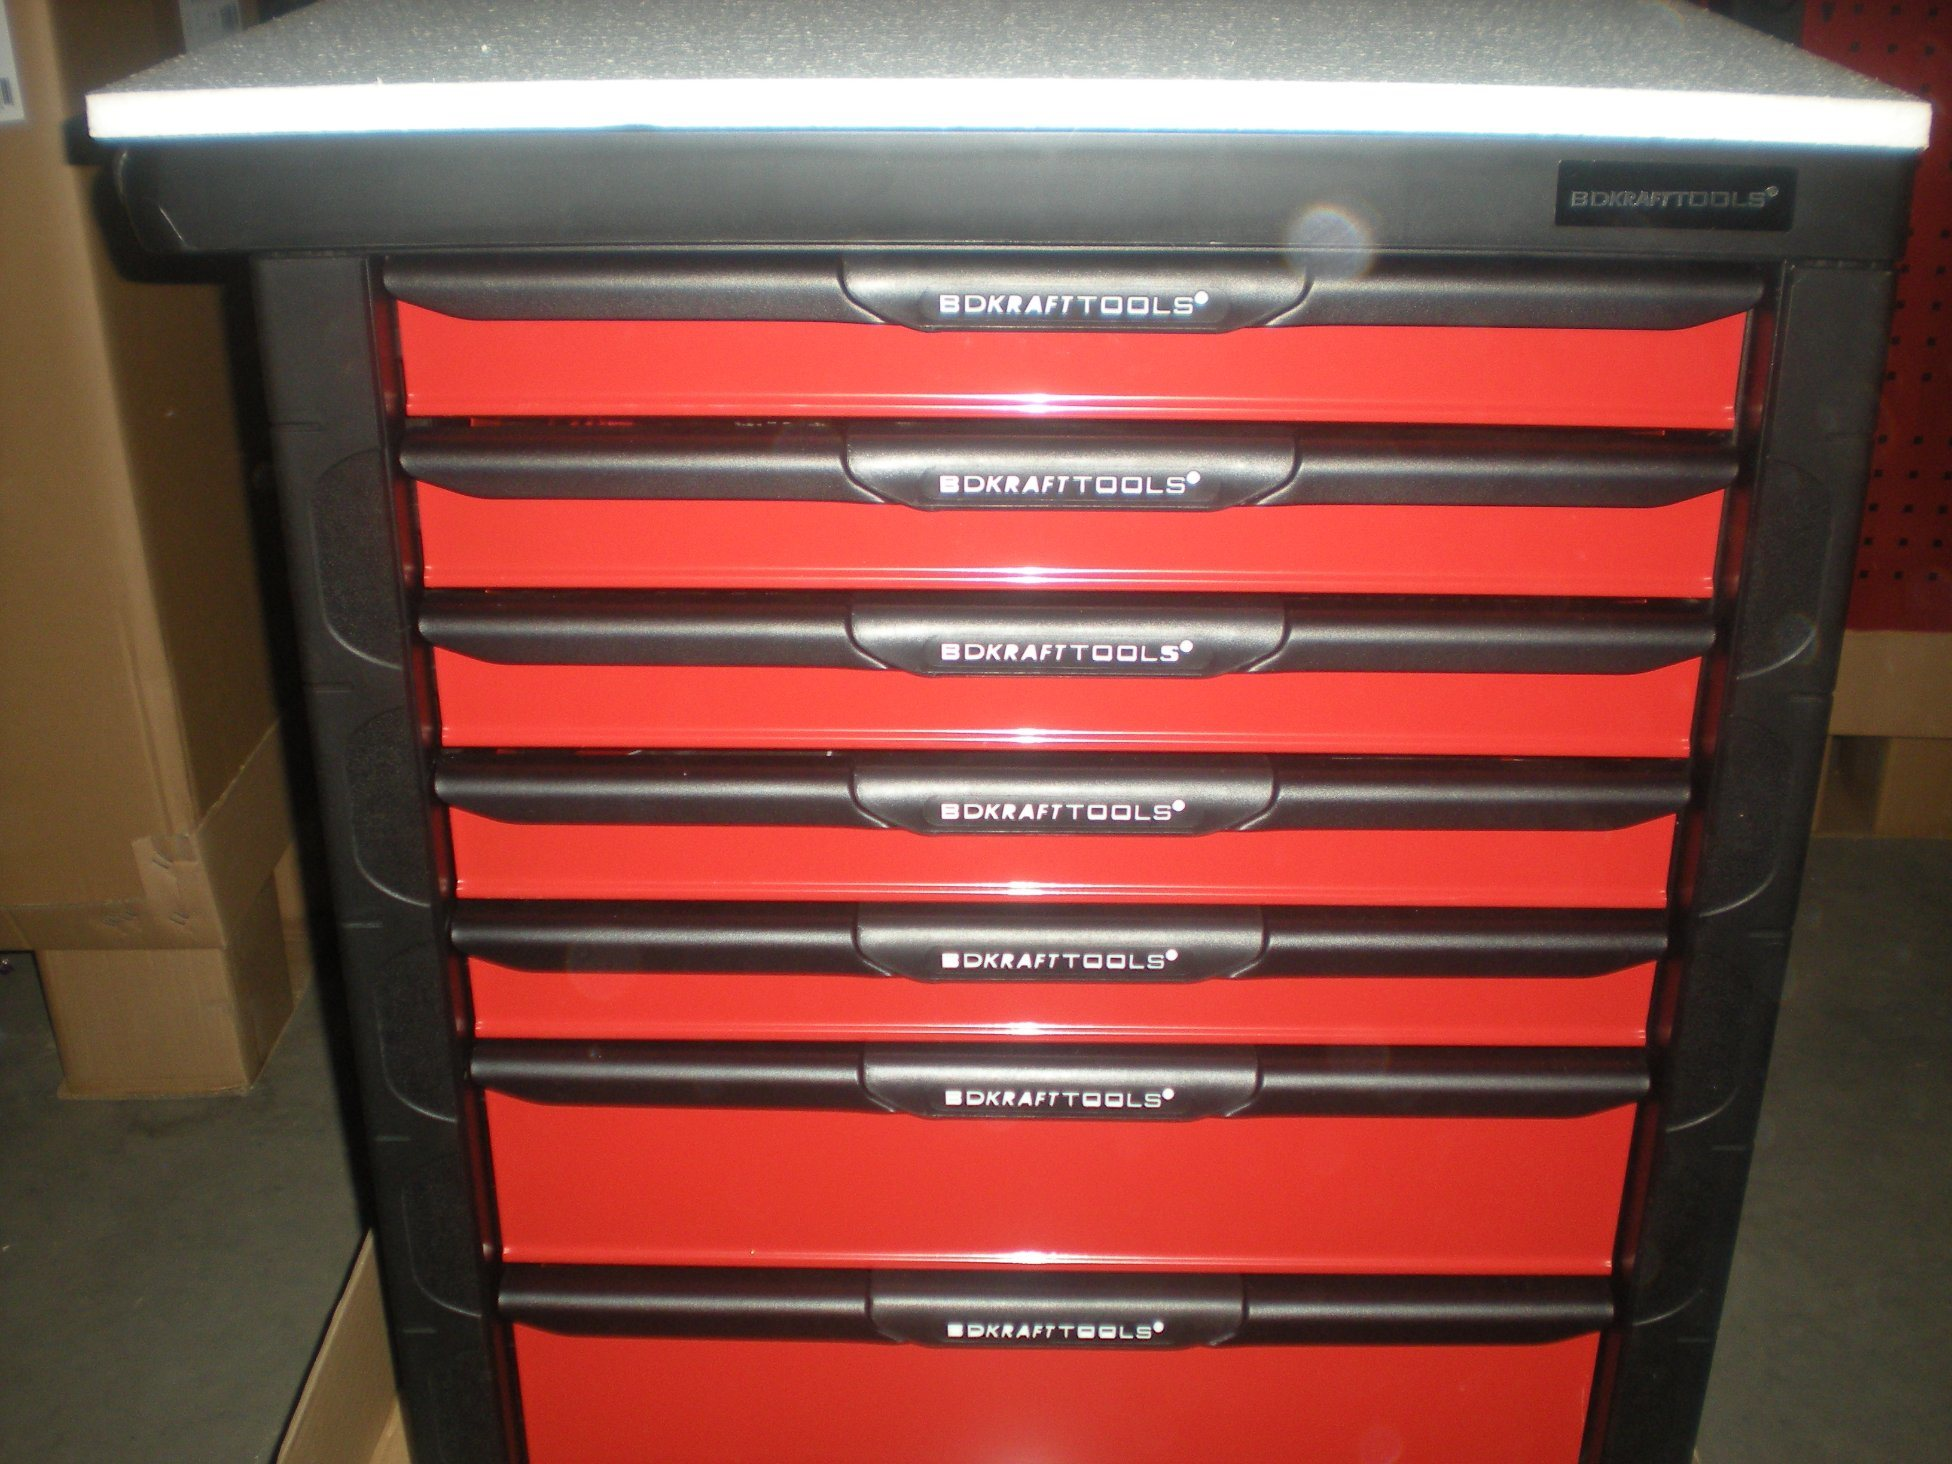 7-Drawer Roller Tool Cabinet with 196 PCS Hand Tools Assortment